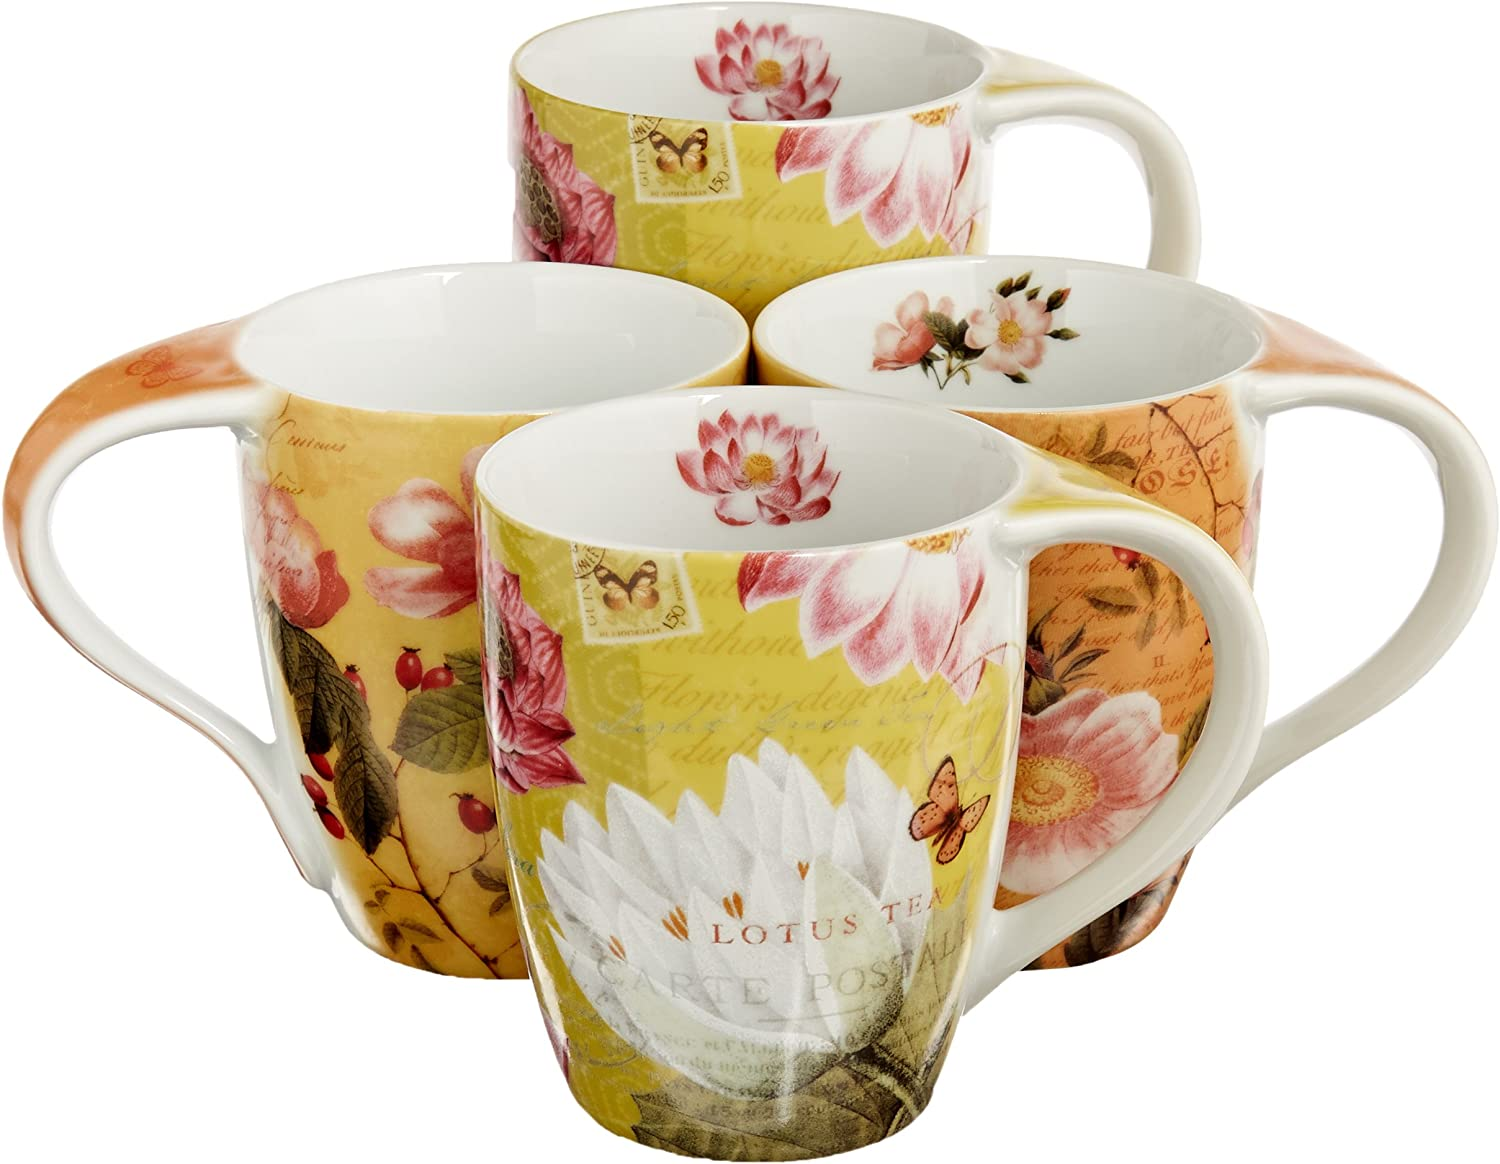 Konitz Lotus and Fruit Tea Mugs of Popular brand Flower 4 Set Special price for a limited time